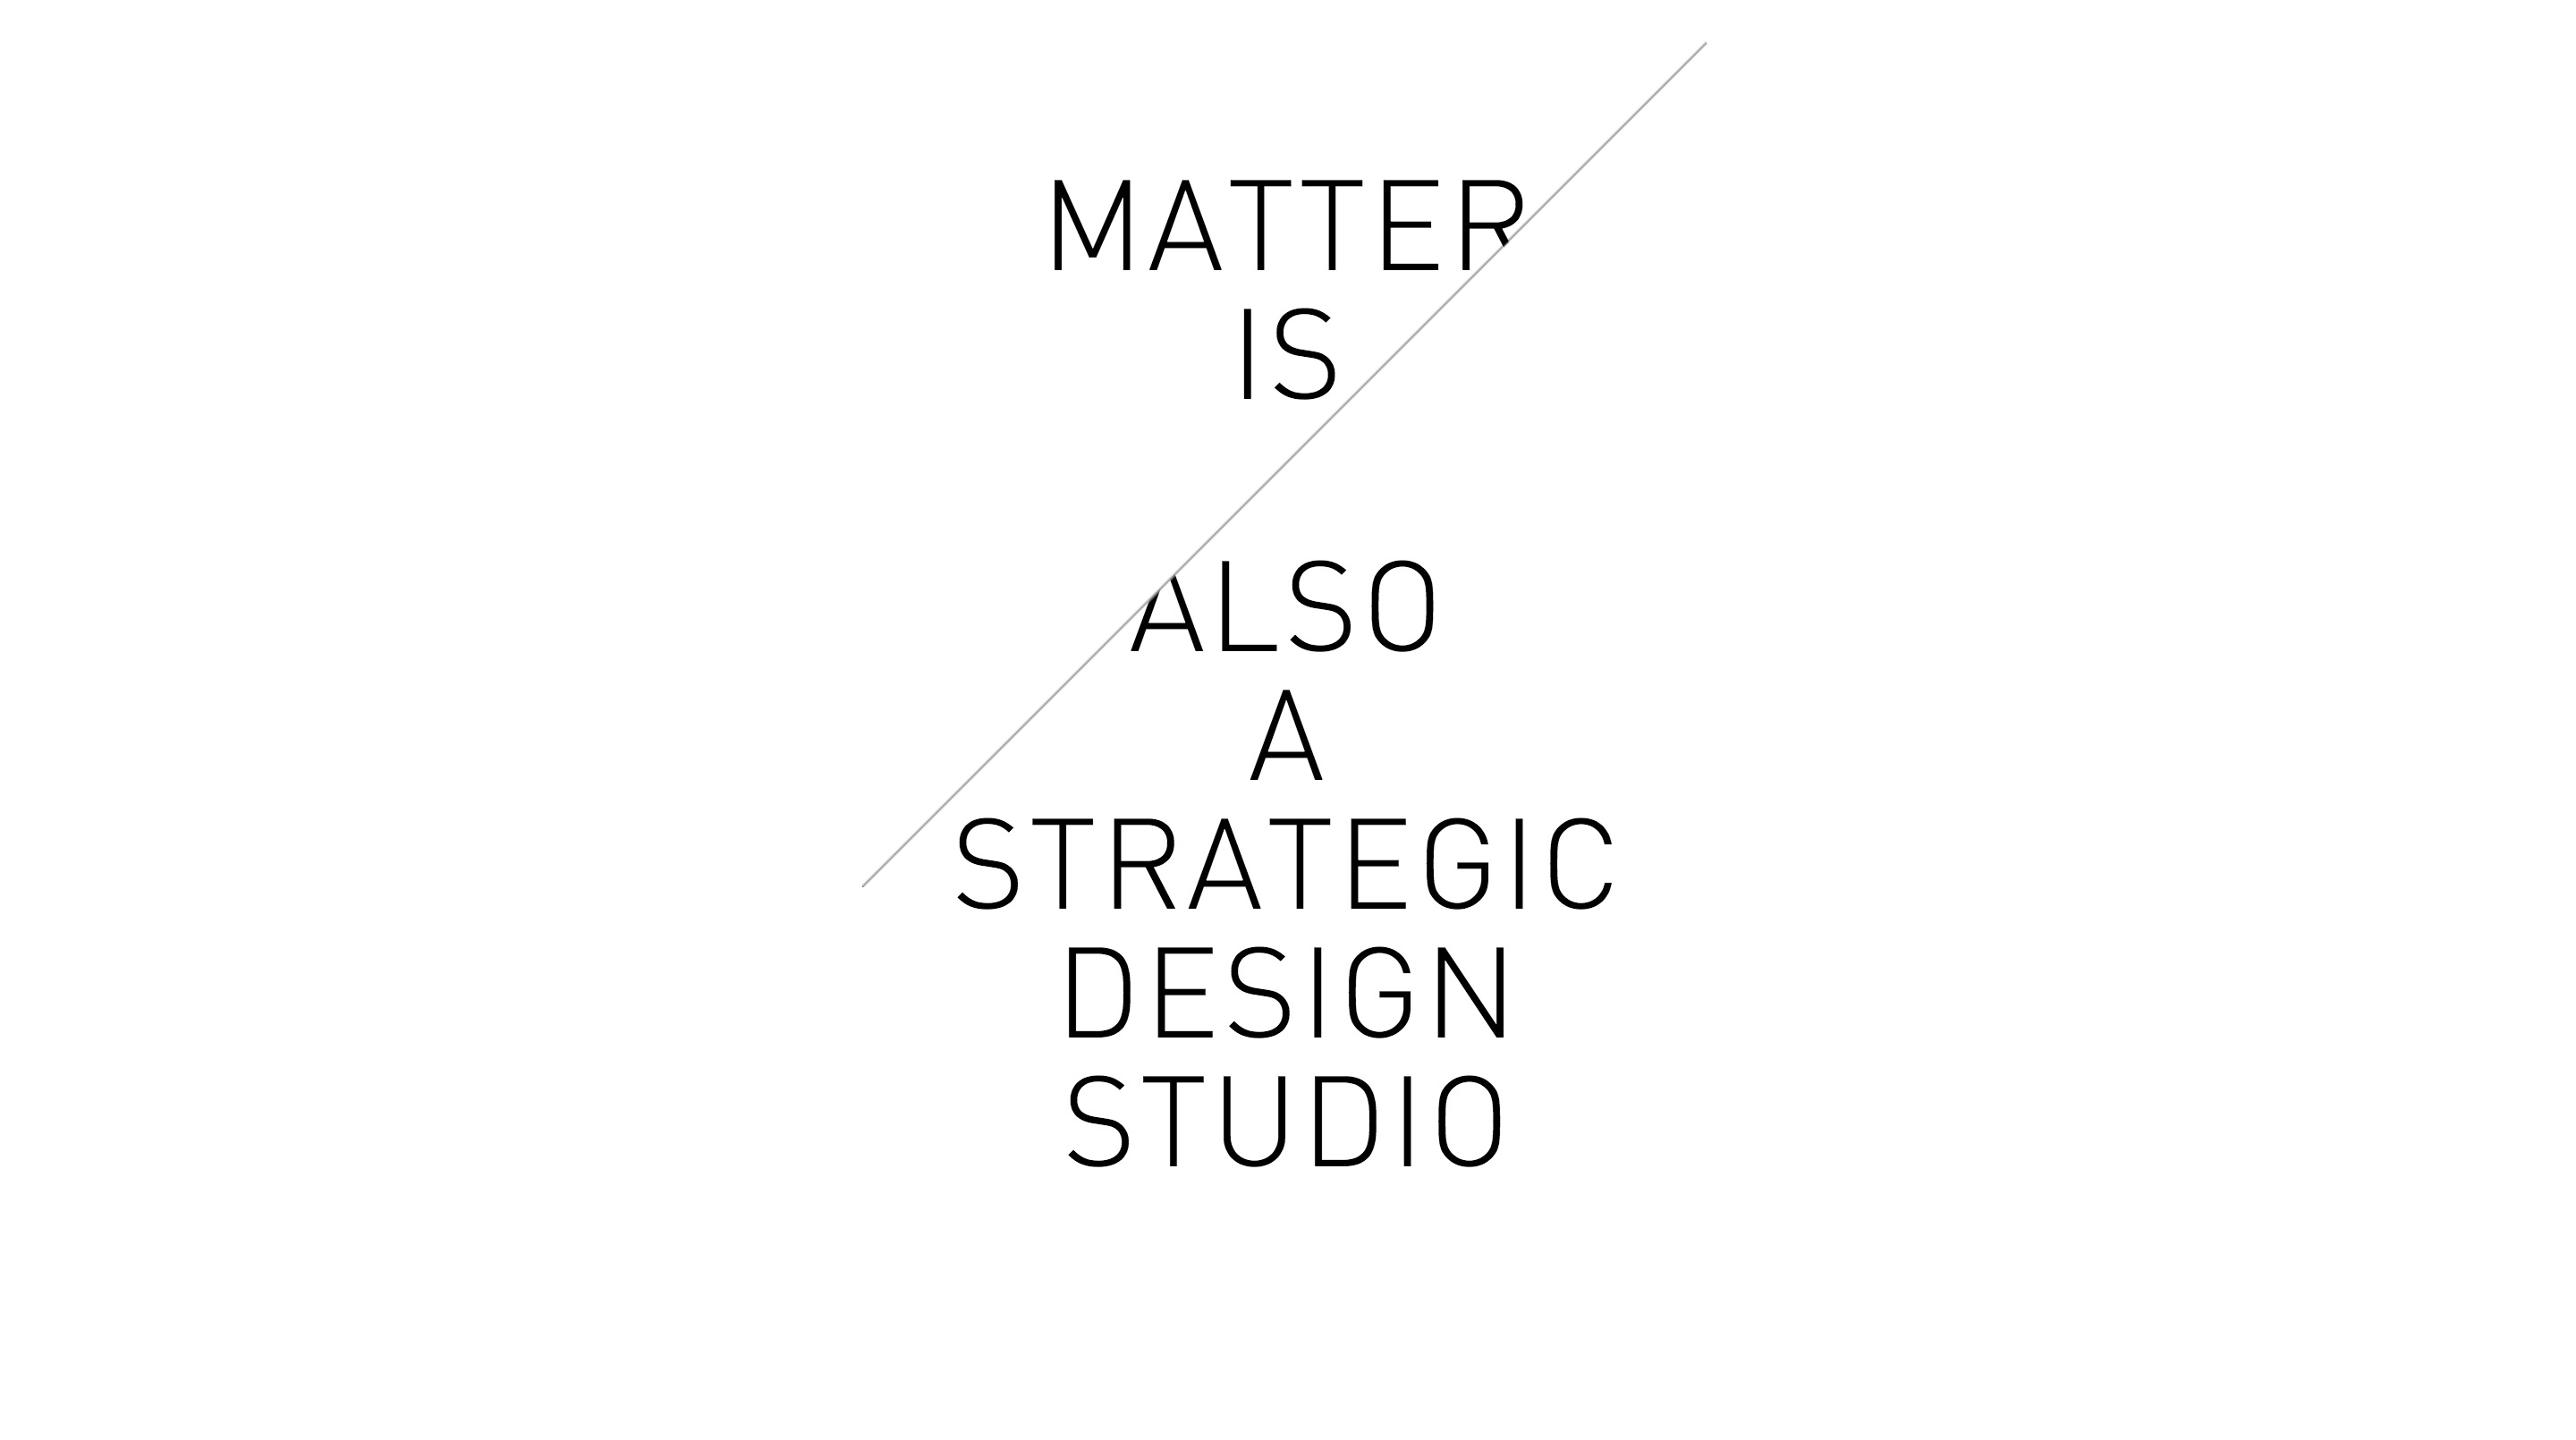 Matter Strategic Design